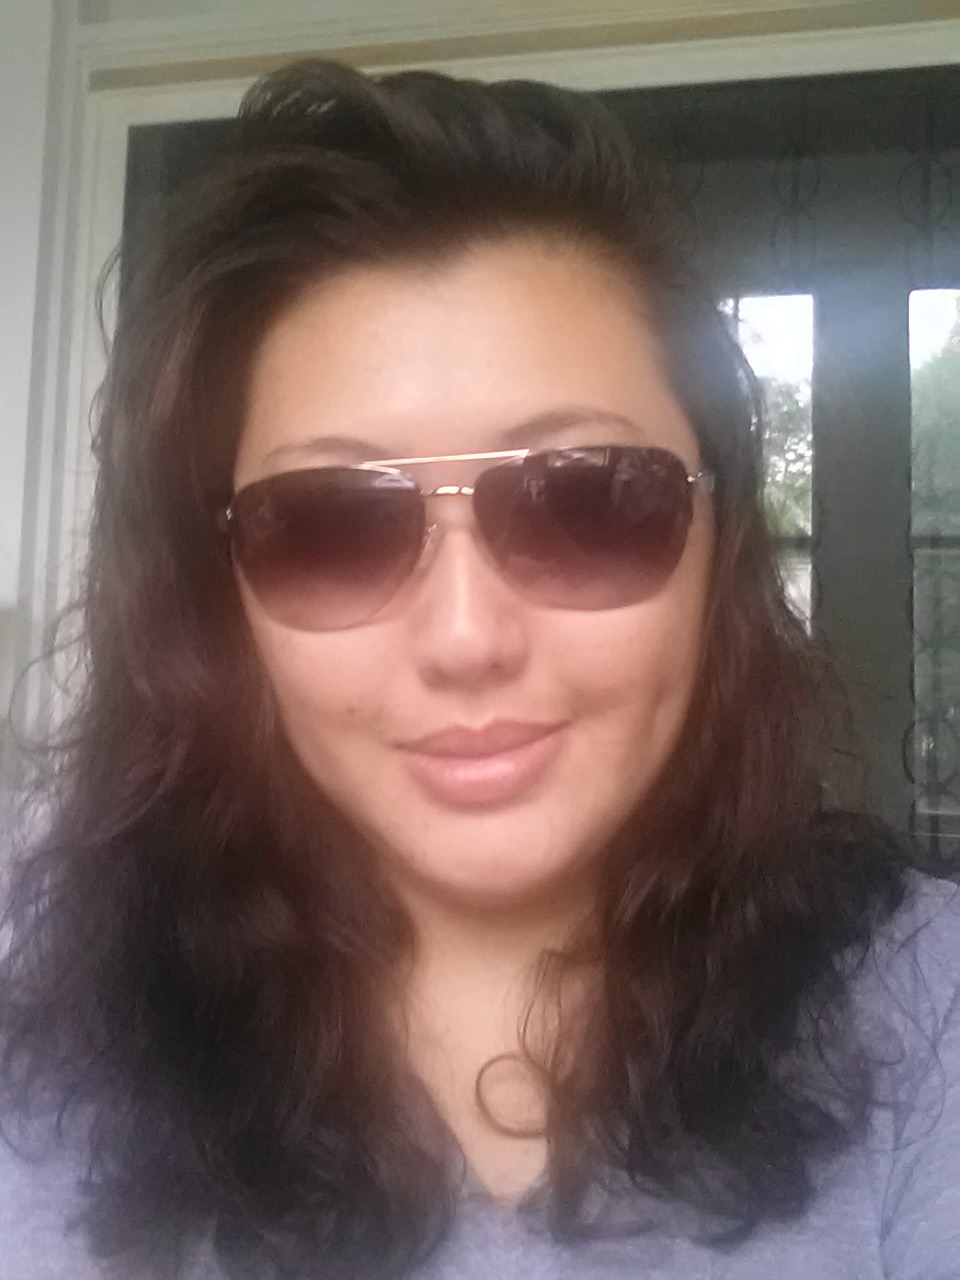 Straight hair perm products - Taken After My Digital Perm Appointment On July 17 2014